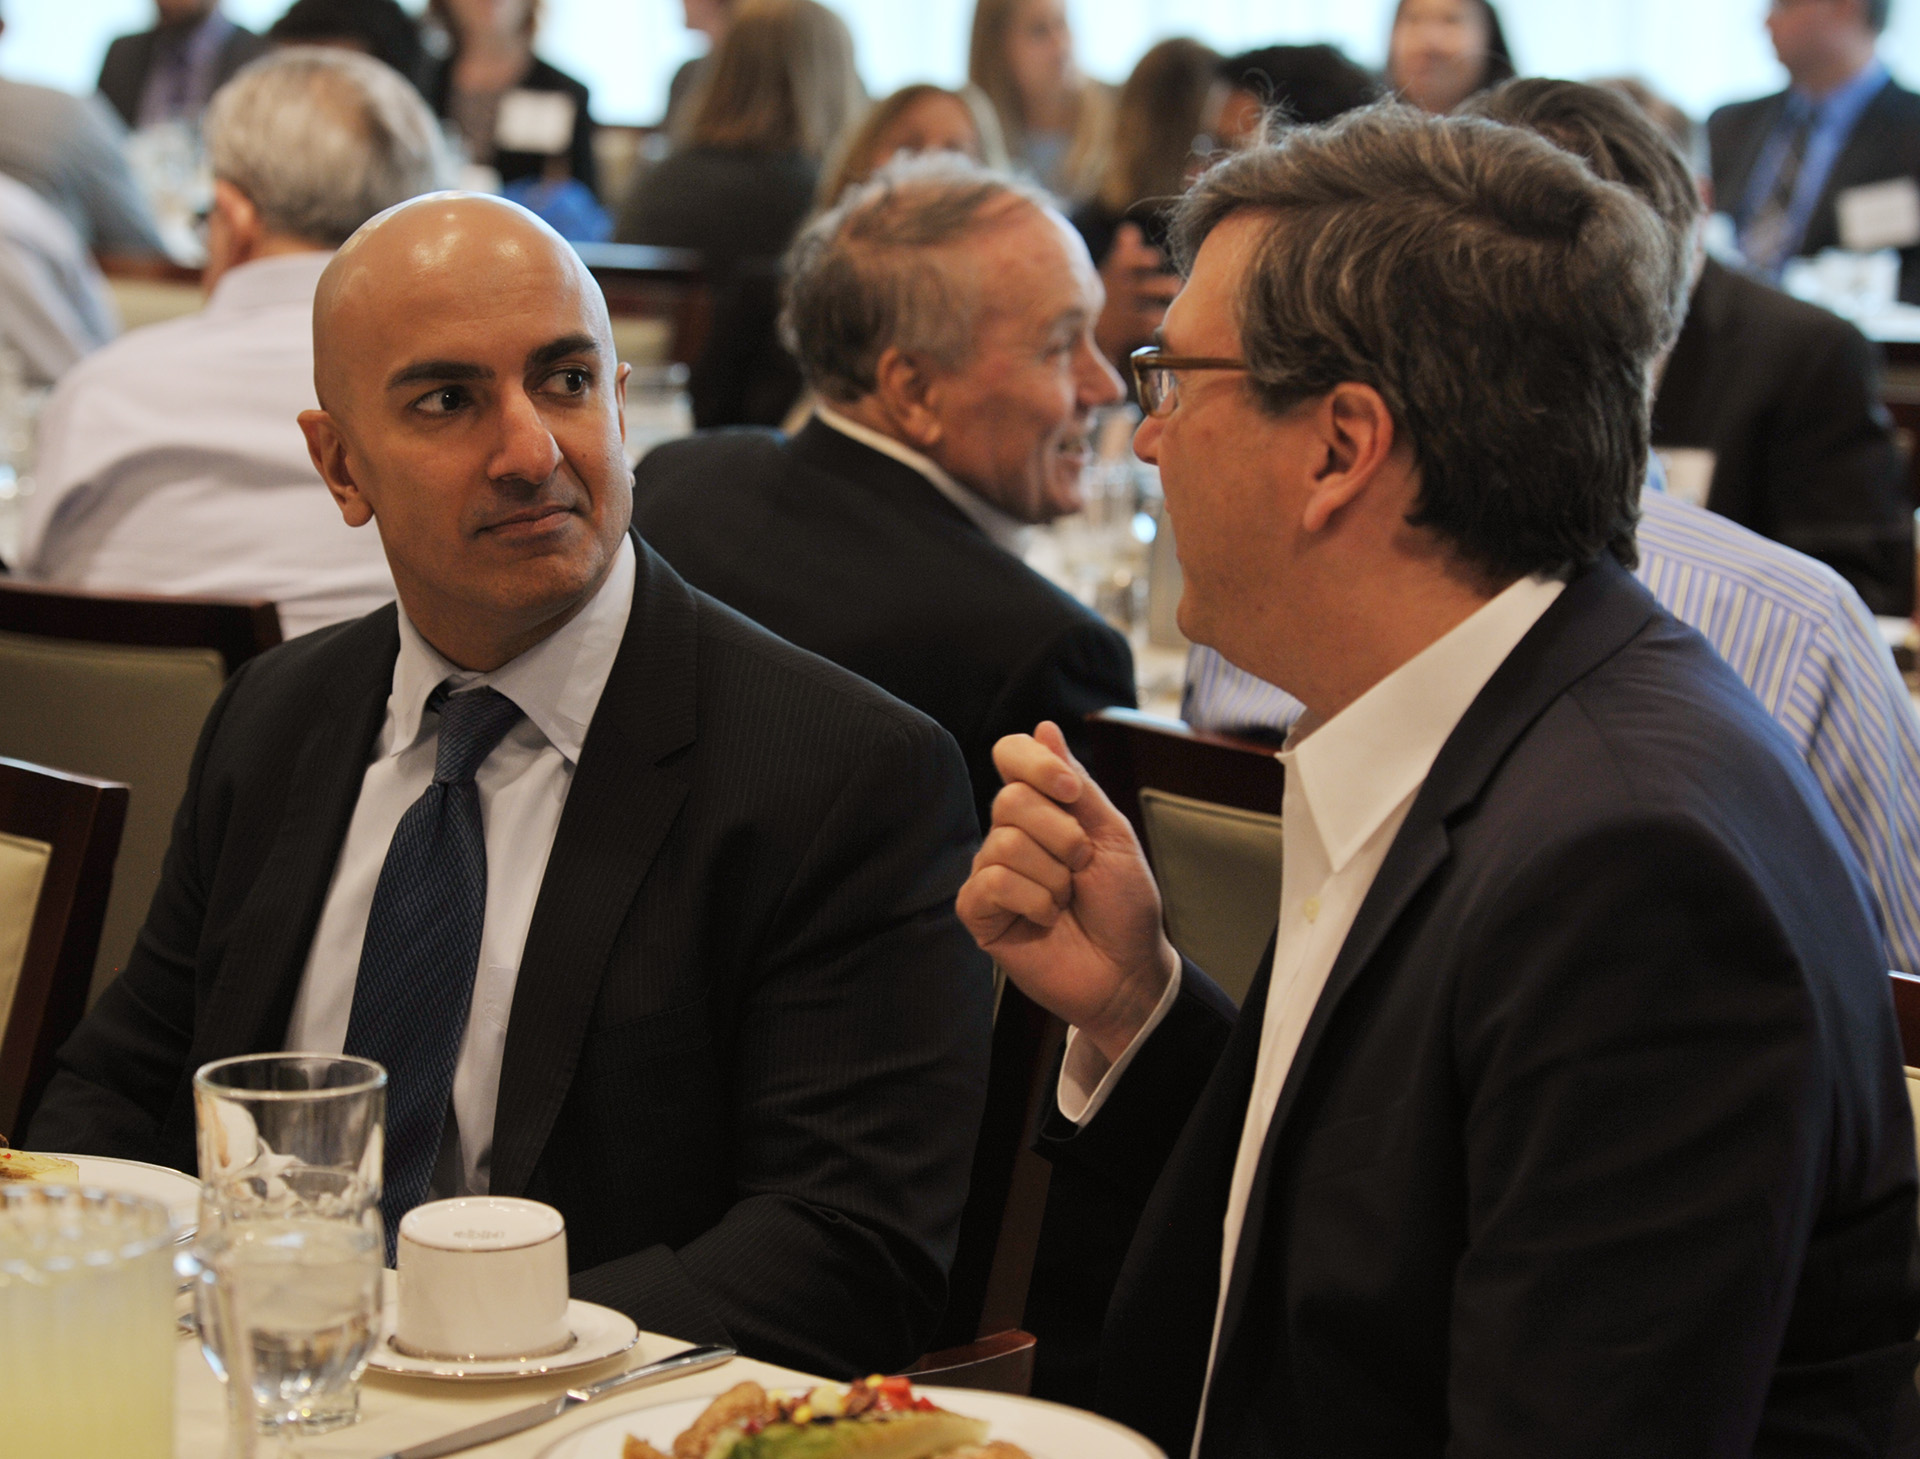 Kashkari and Furman speaking together at lunch